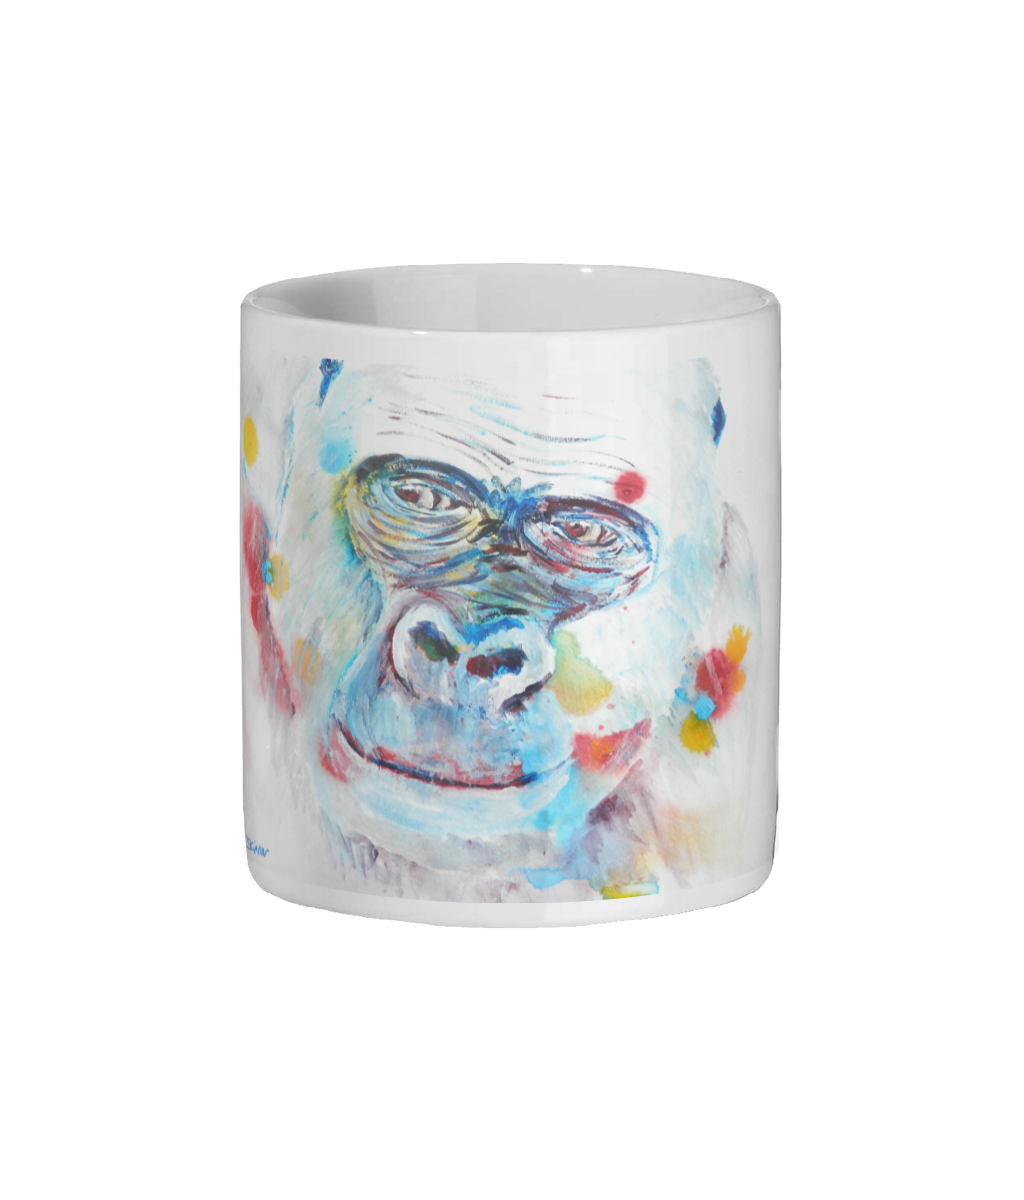 wildlife mug, gorilla mug, blue and white animal mug, coffee lover gift, ape mug gift